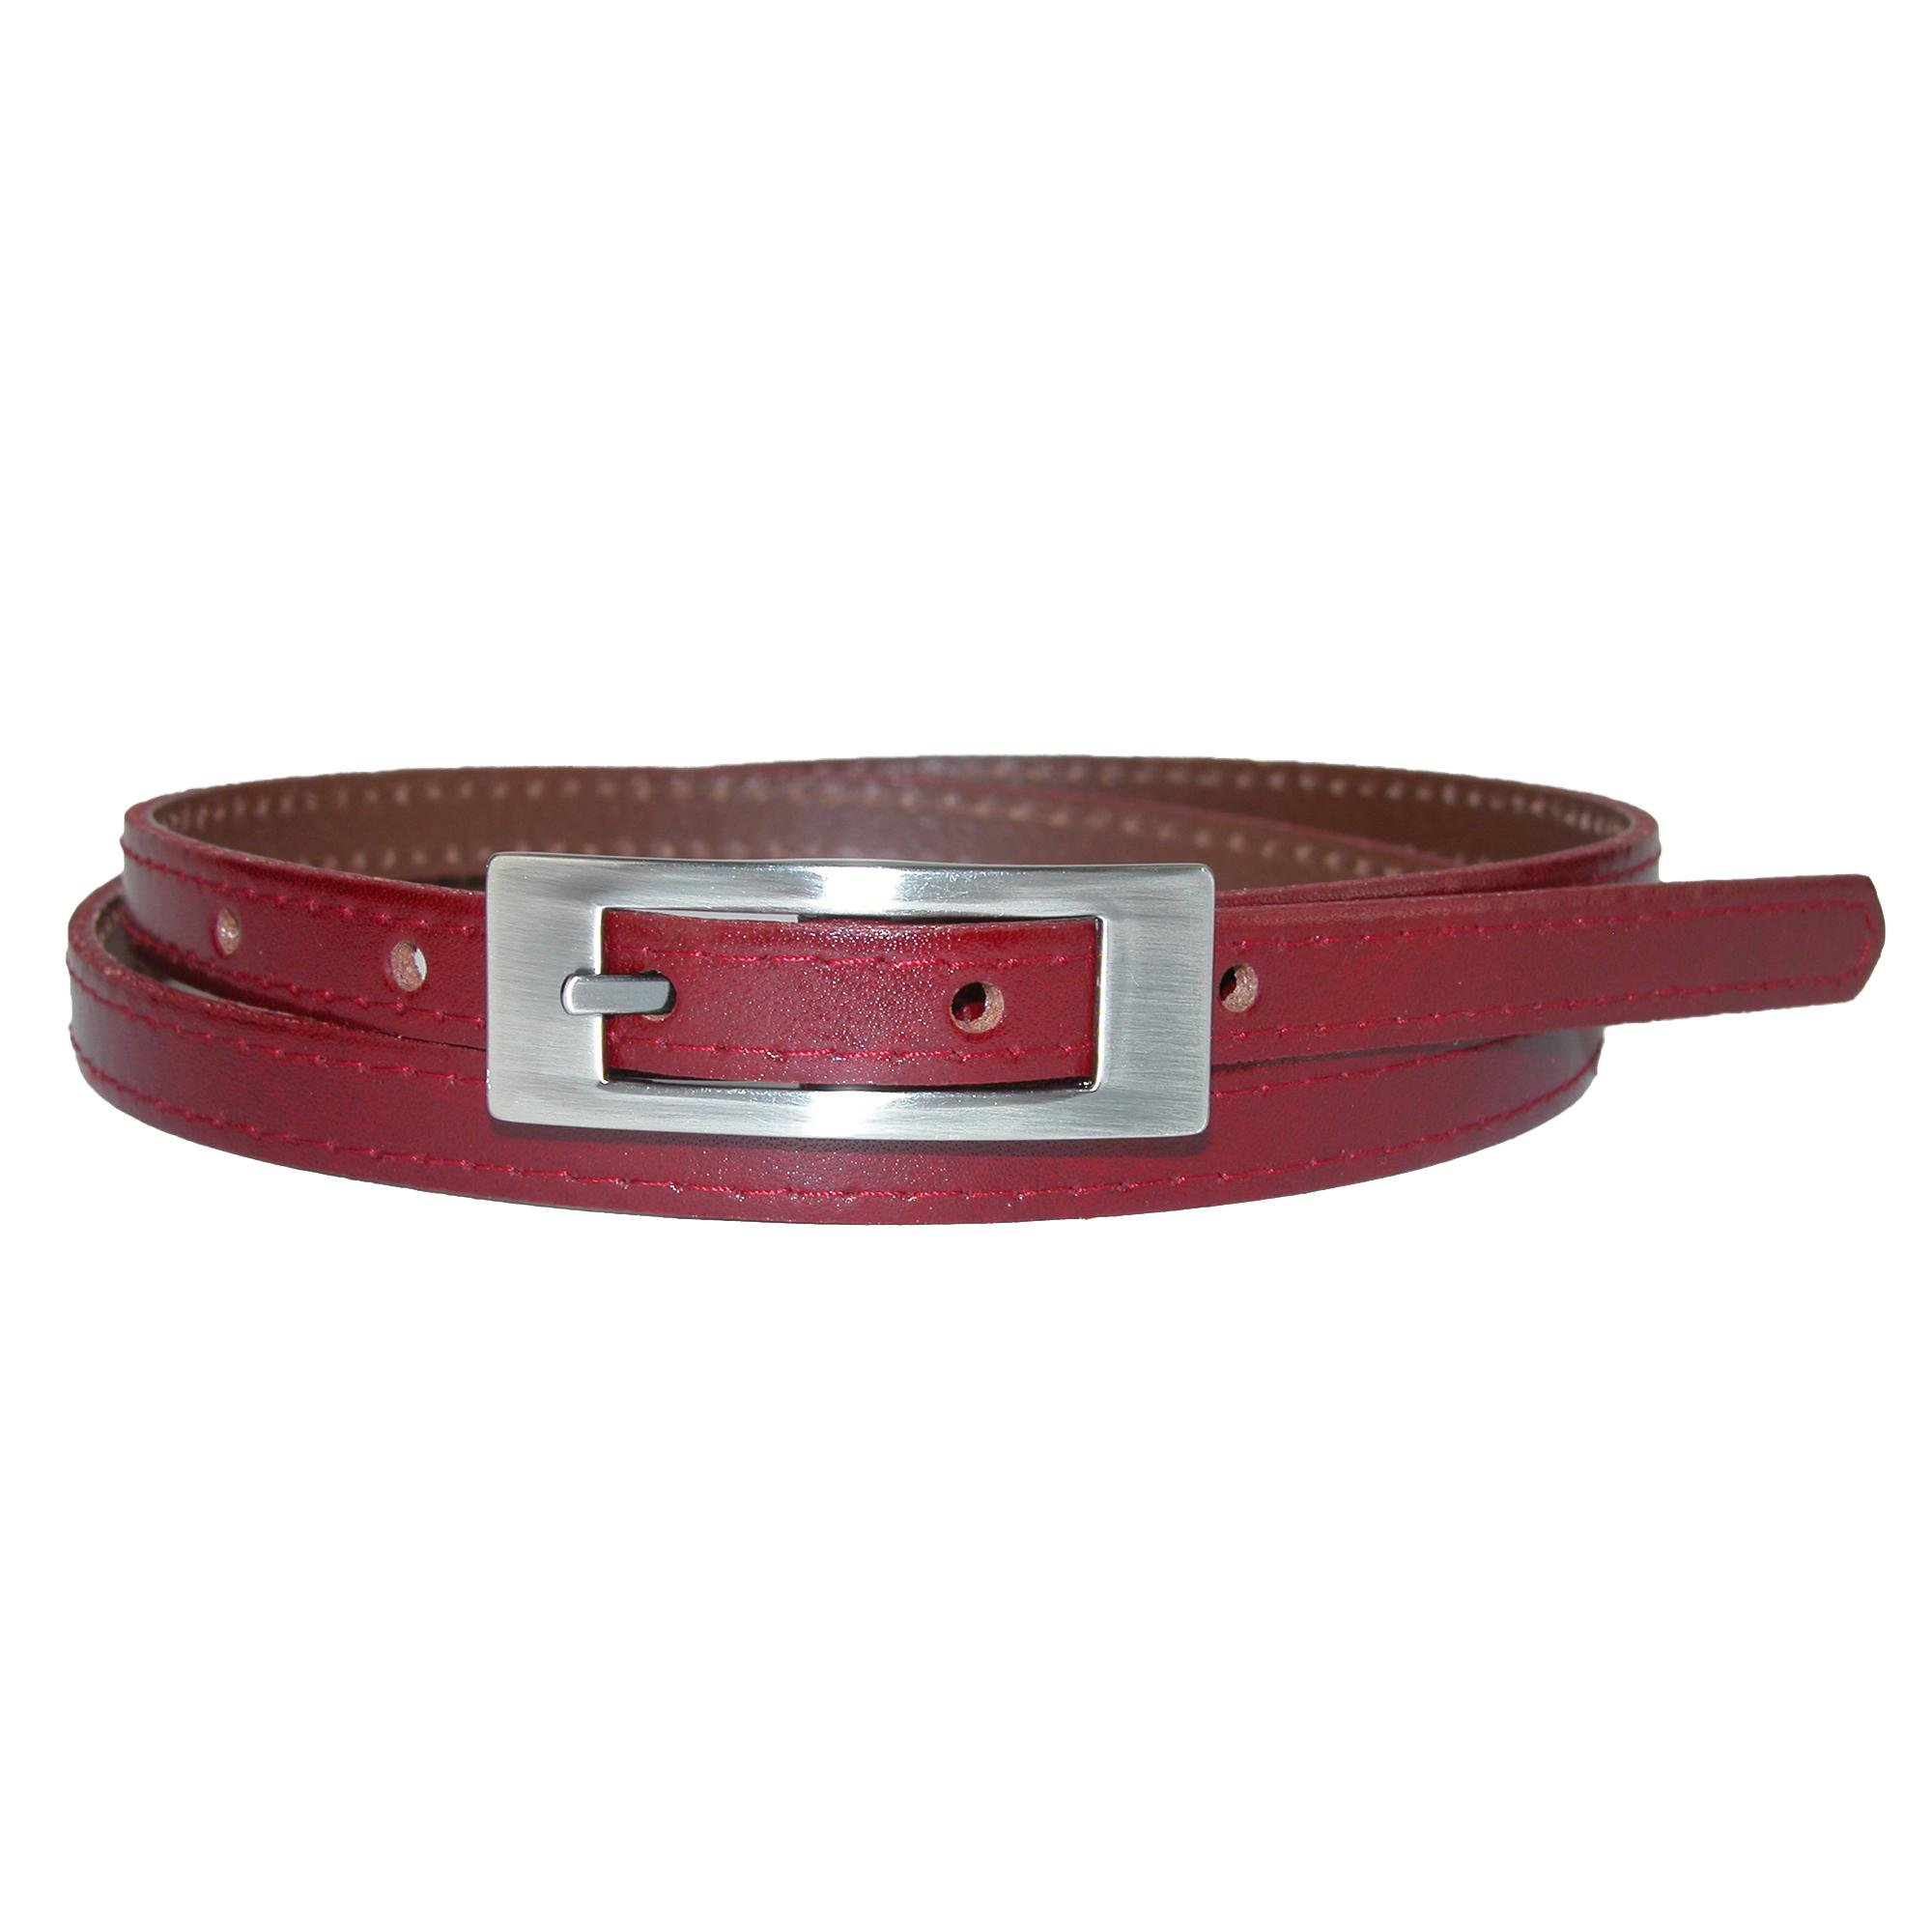 Landes Women's Plus Size Leather Uniform Belt, 44, Red